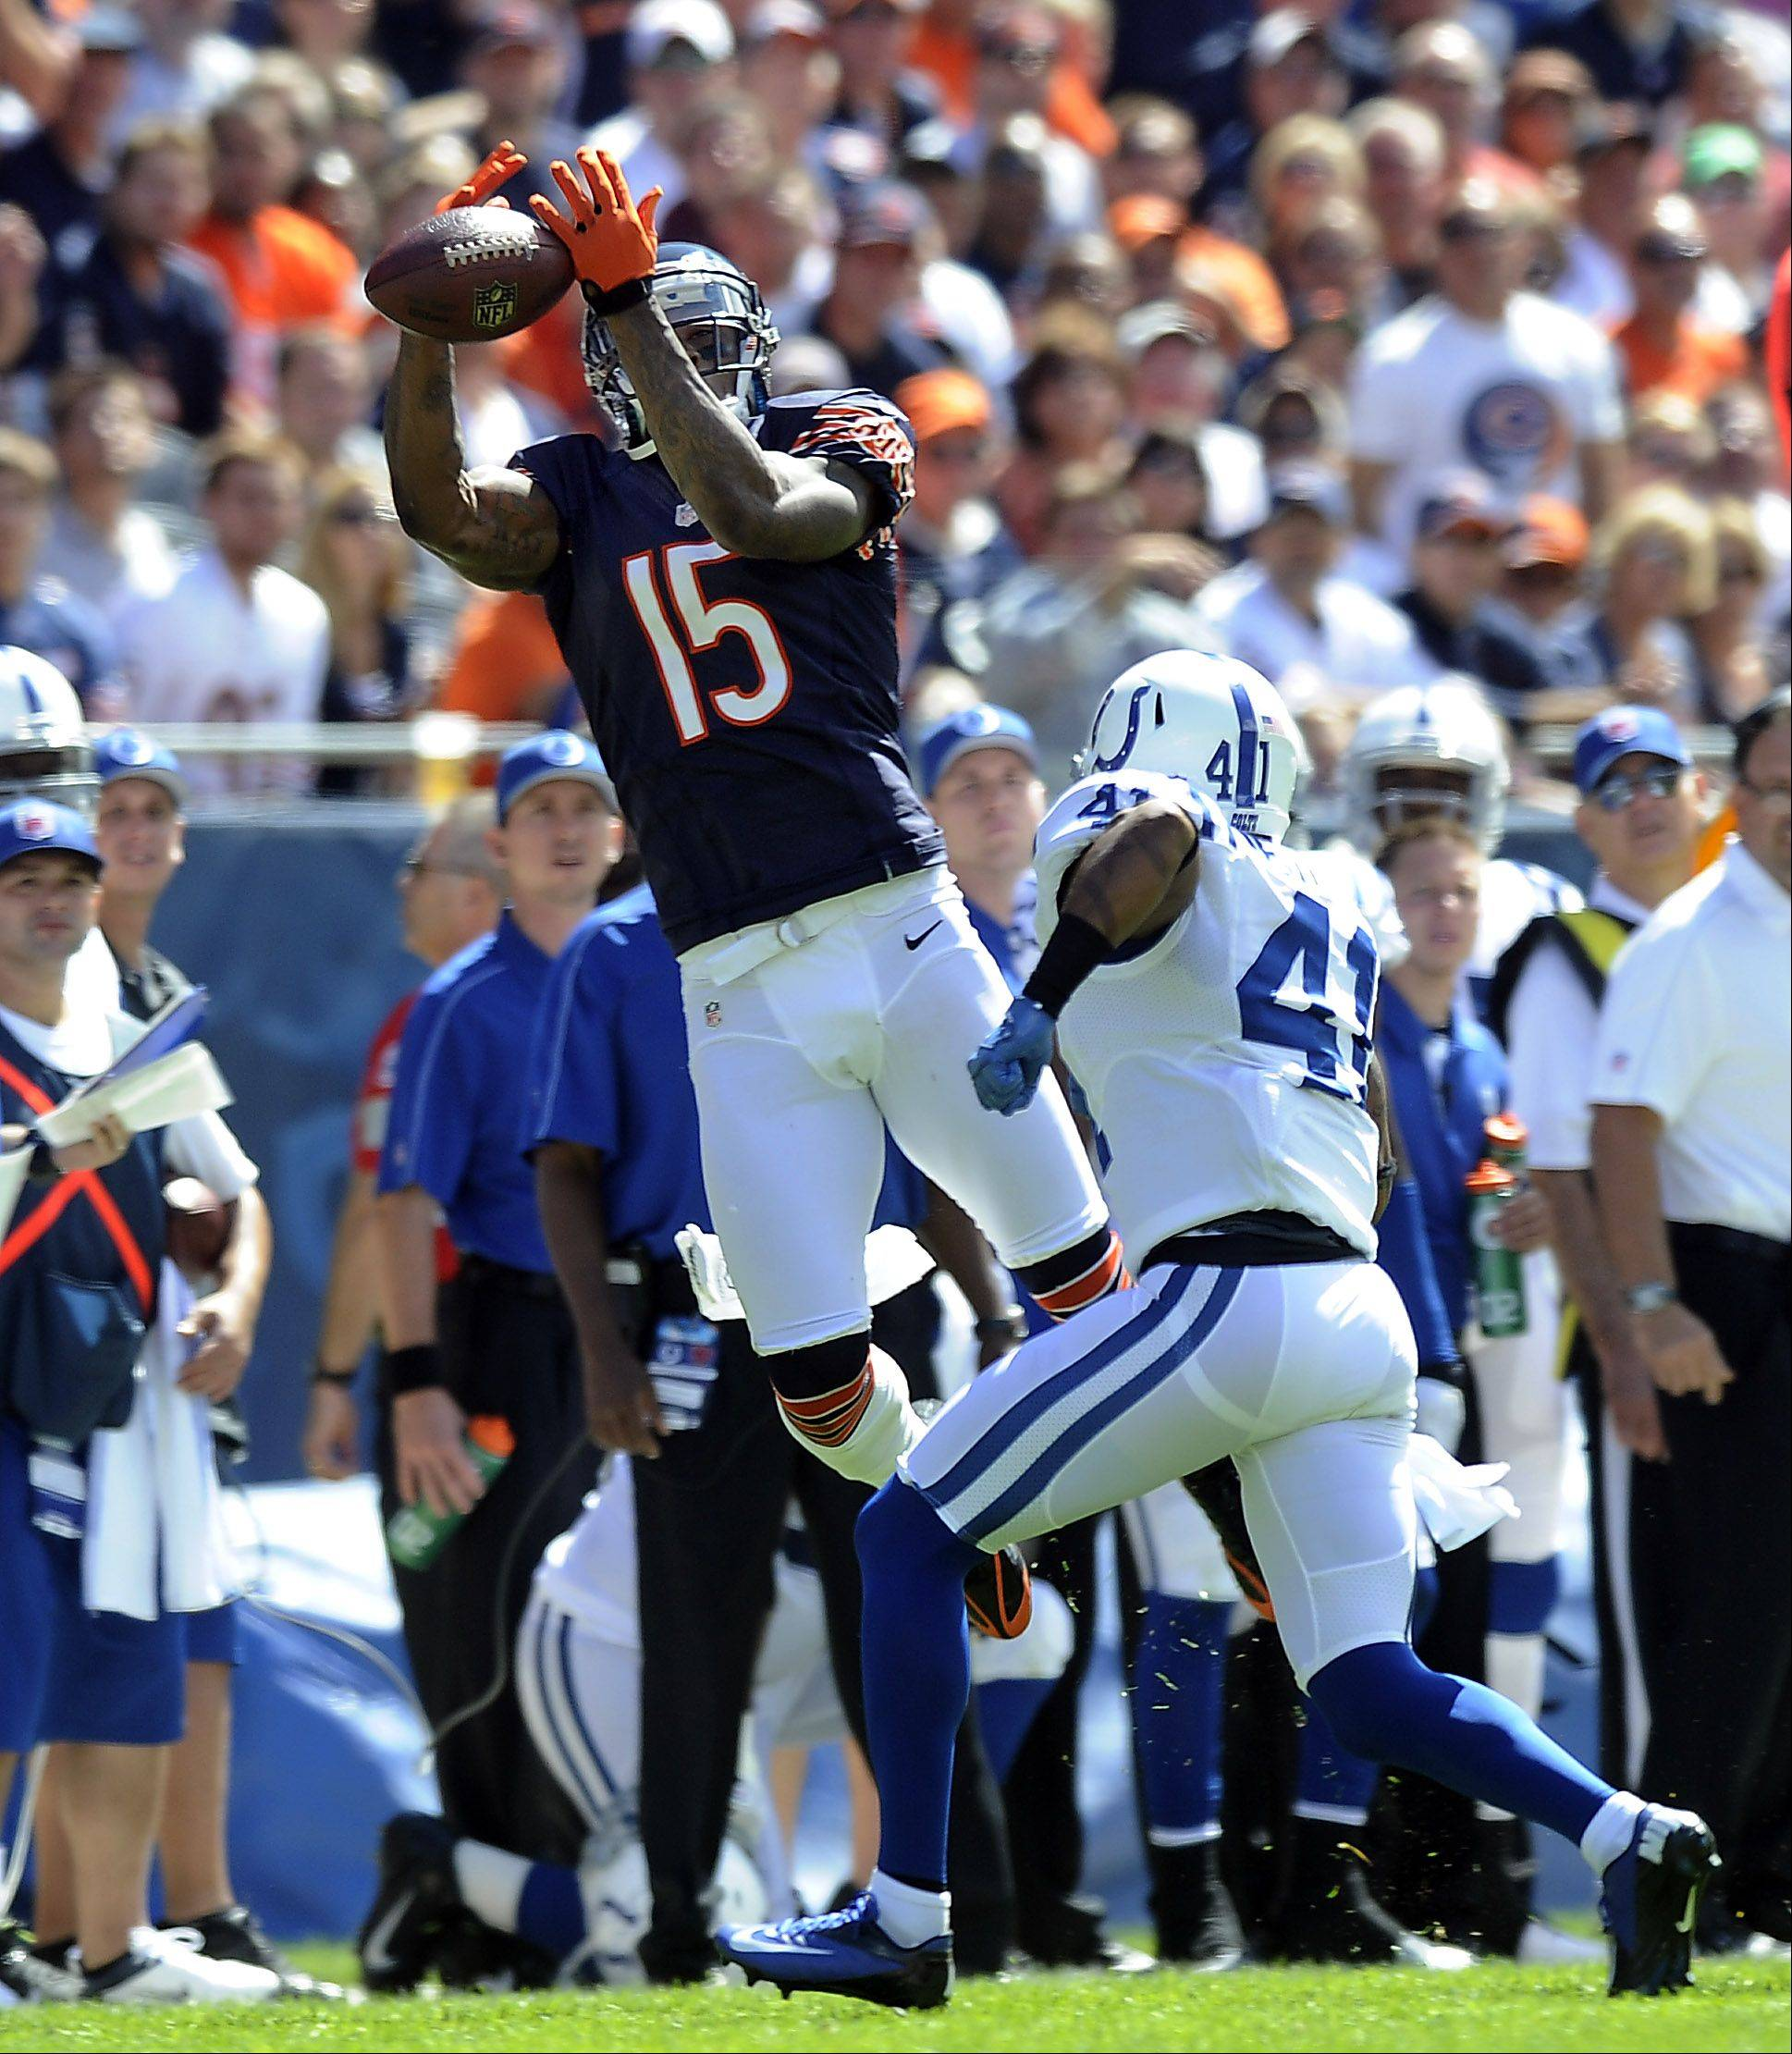 Chicago Bears Brandon Marshall lets this first quarter pass slips through his fingers during the Bears home opener at Soldier Field in Chicago.